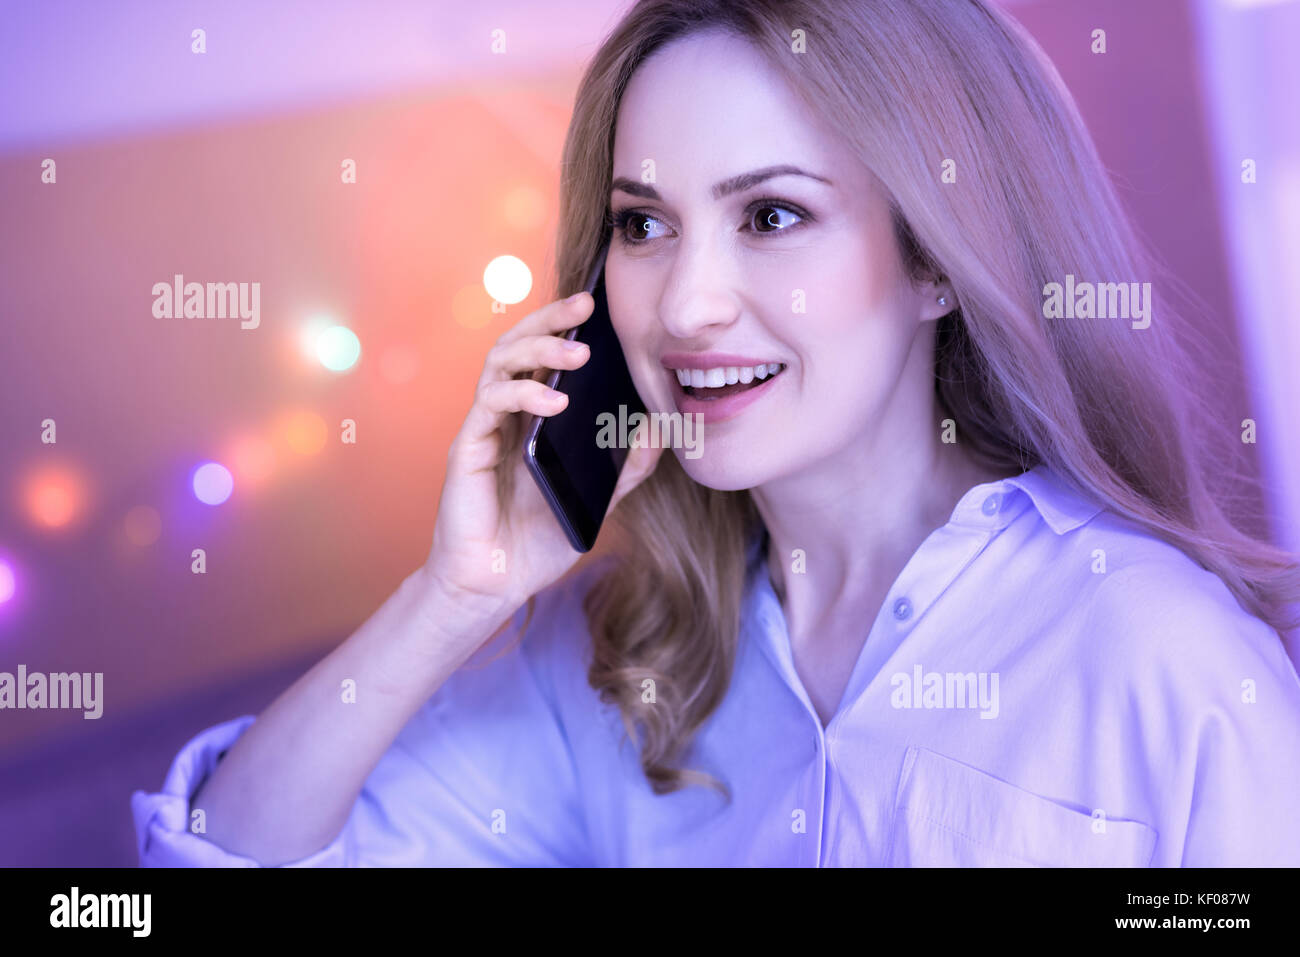 Smiling woman having a conversation on the phone - Stock Image